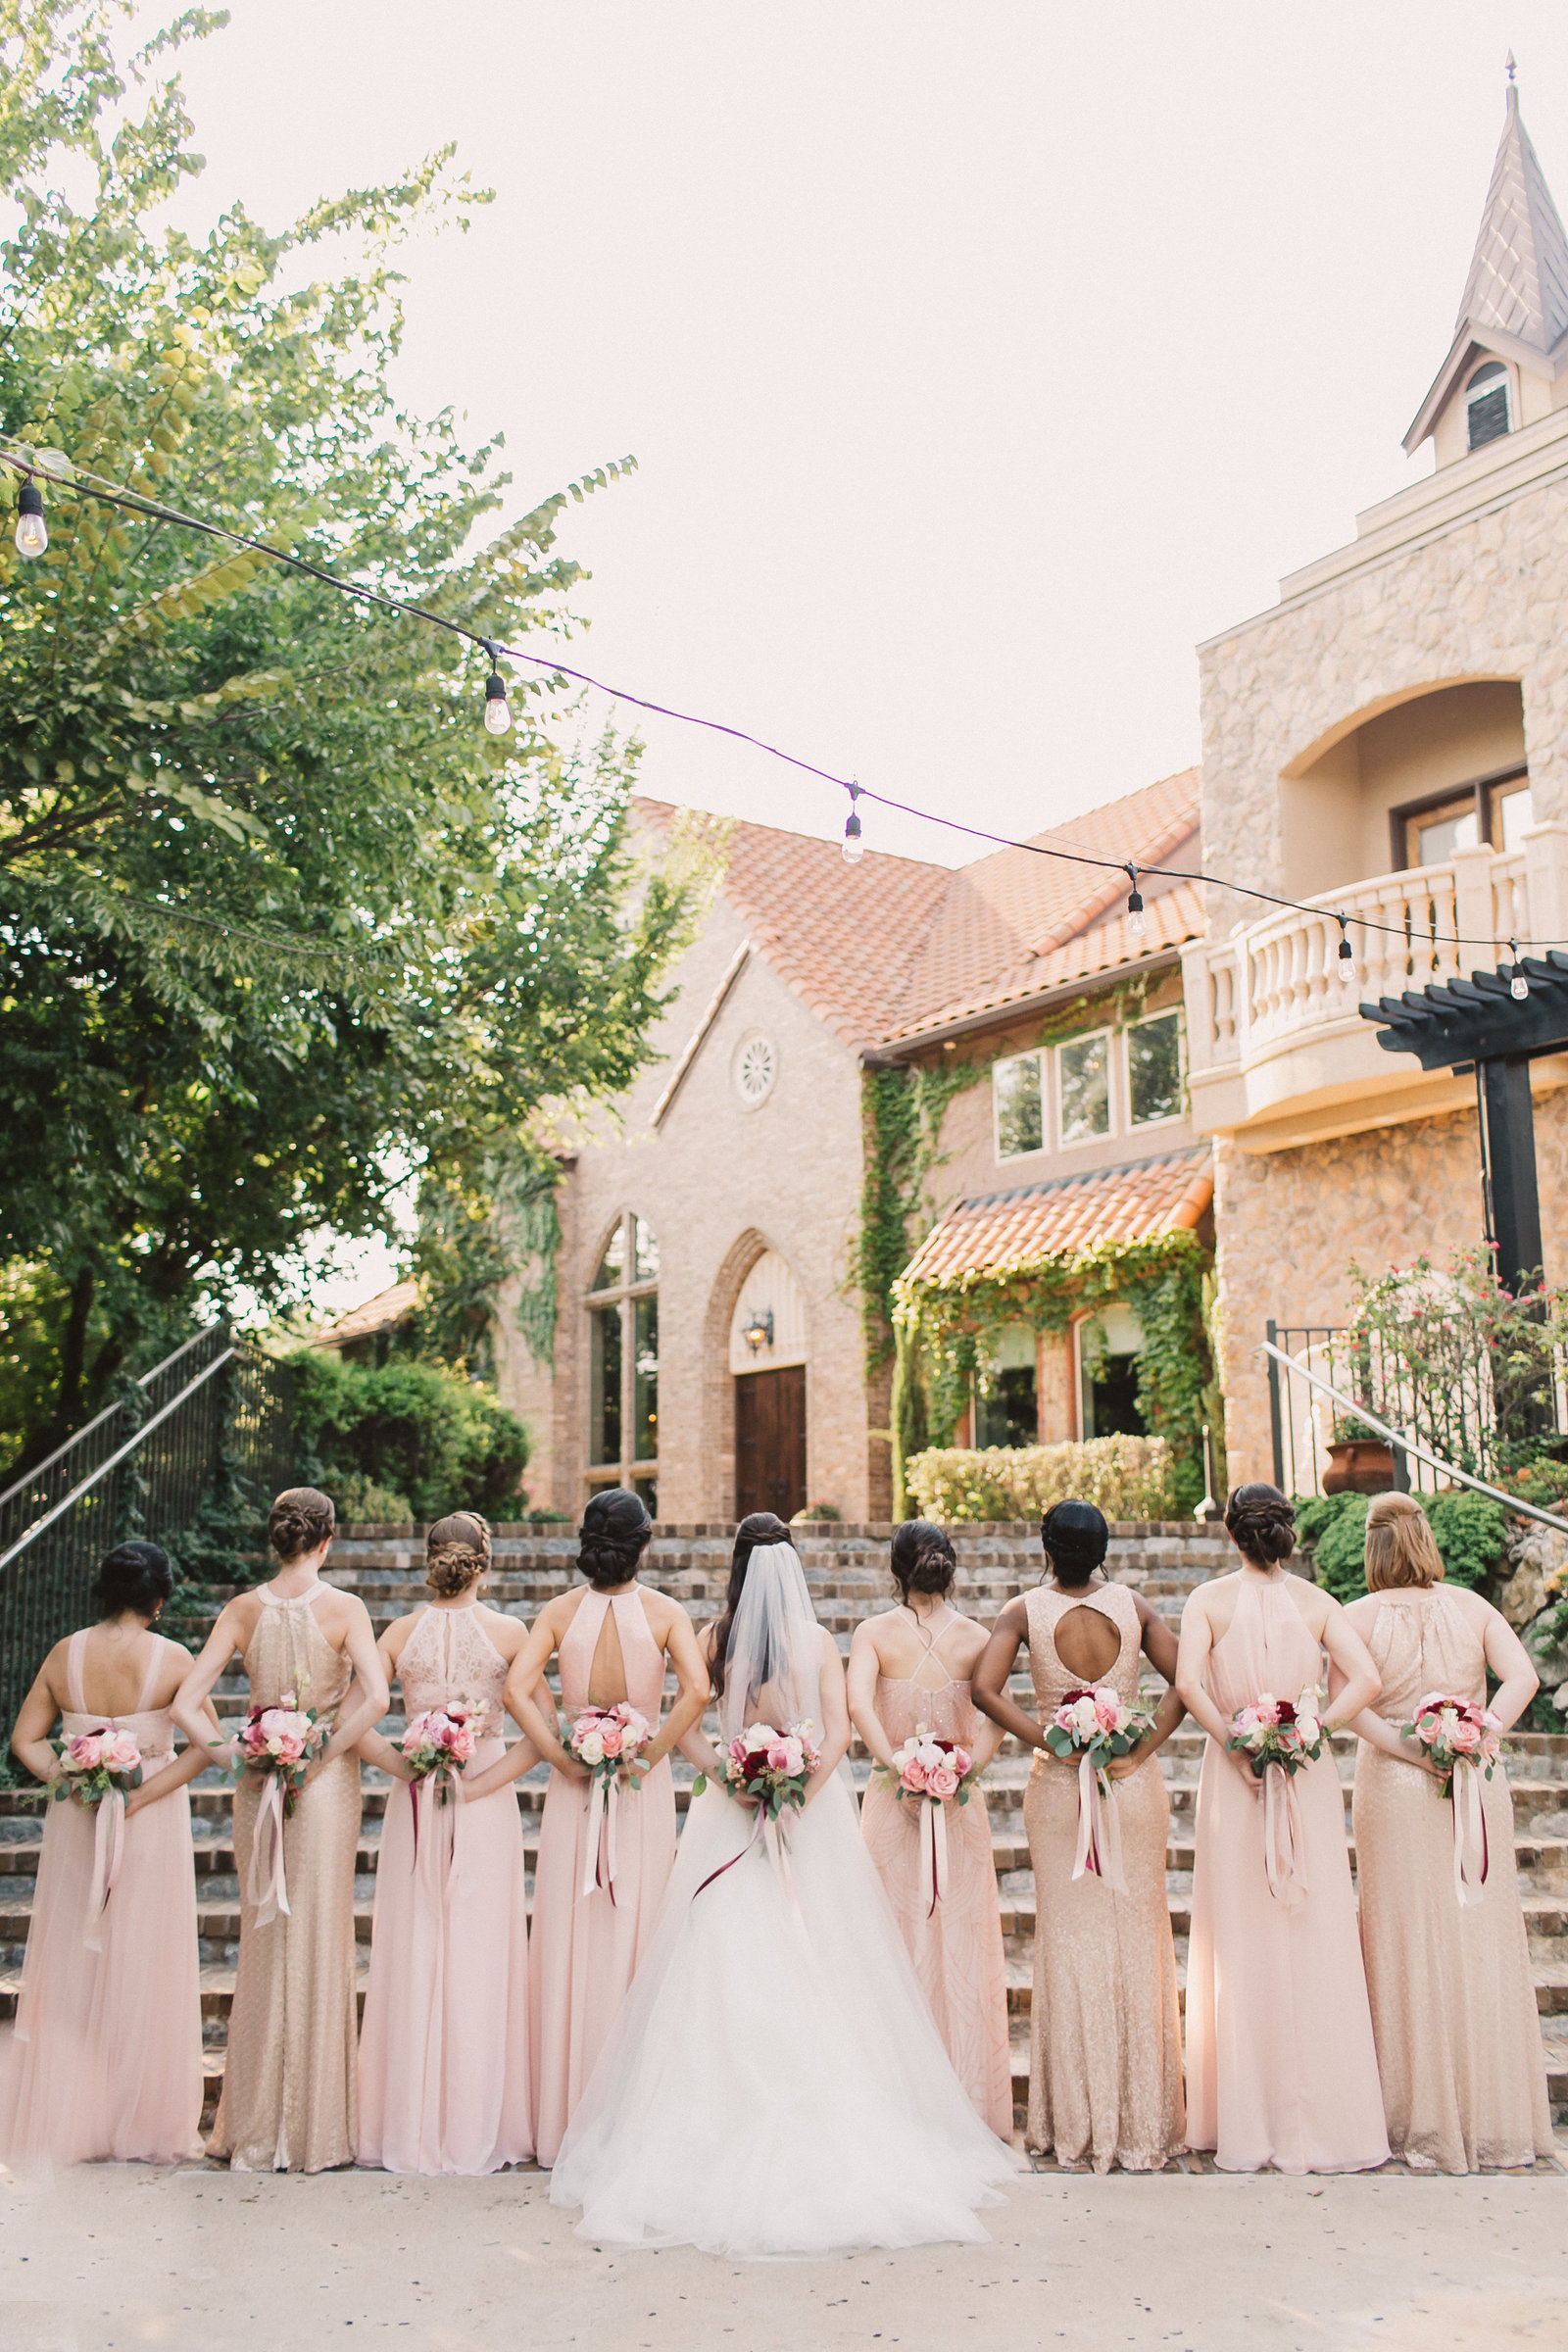 Aristide-Mansfield-_-Fort-Worth-Wedding-Photographer-_-Emily-Nicole-Photo-70